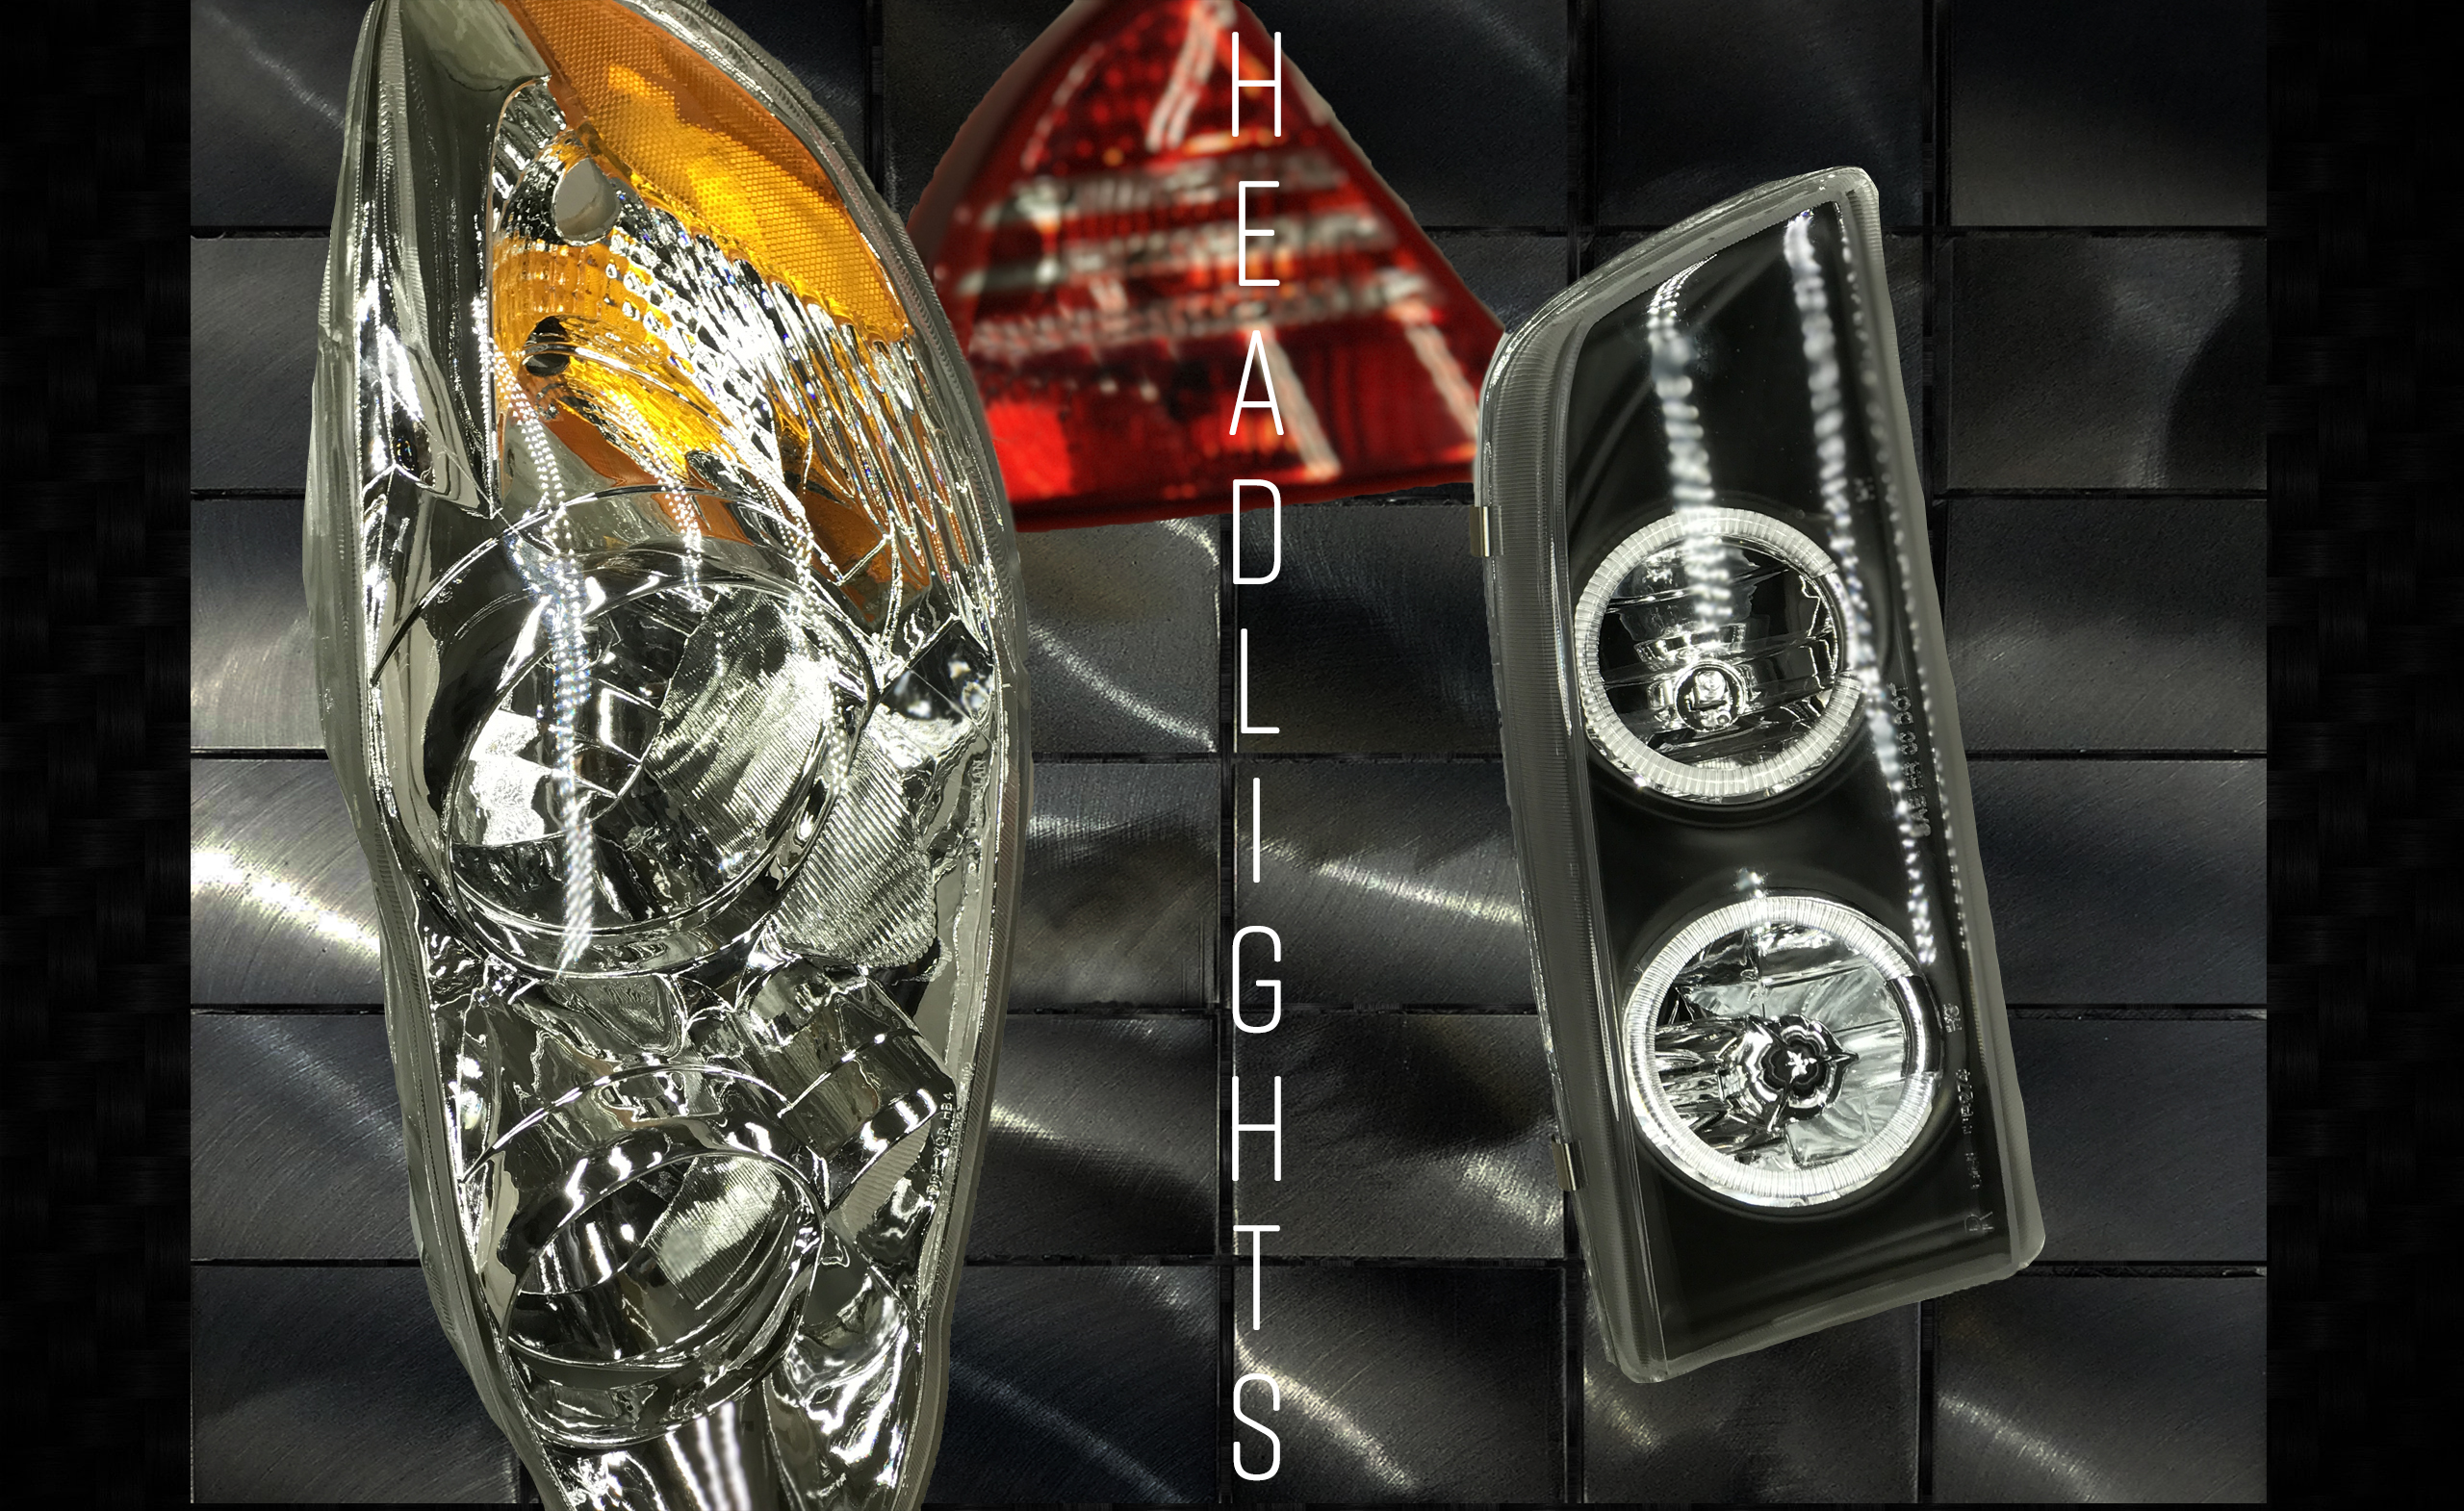 Headlights (Faros)